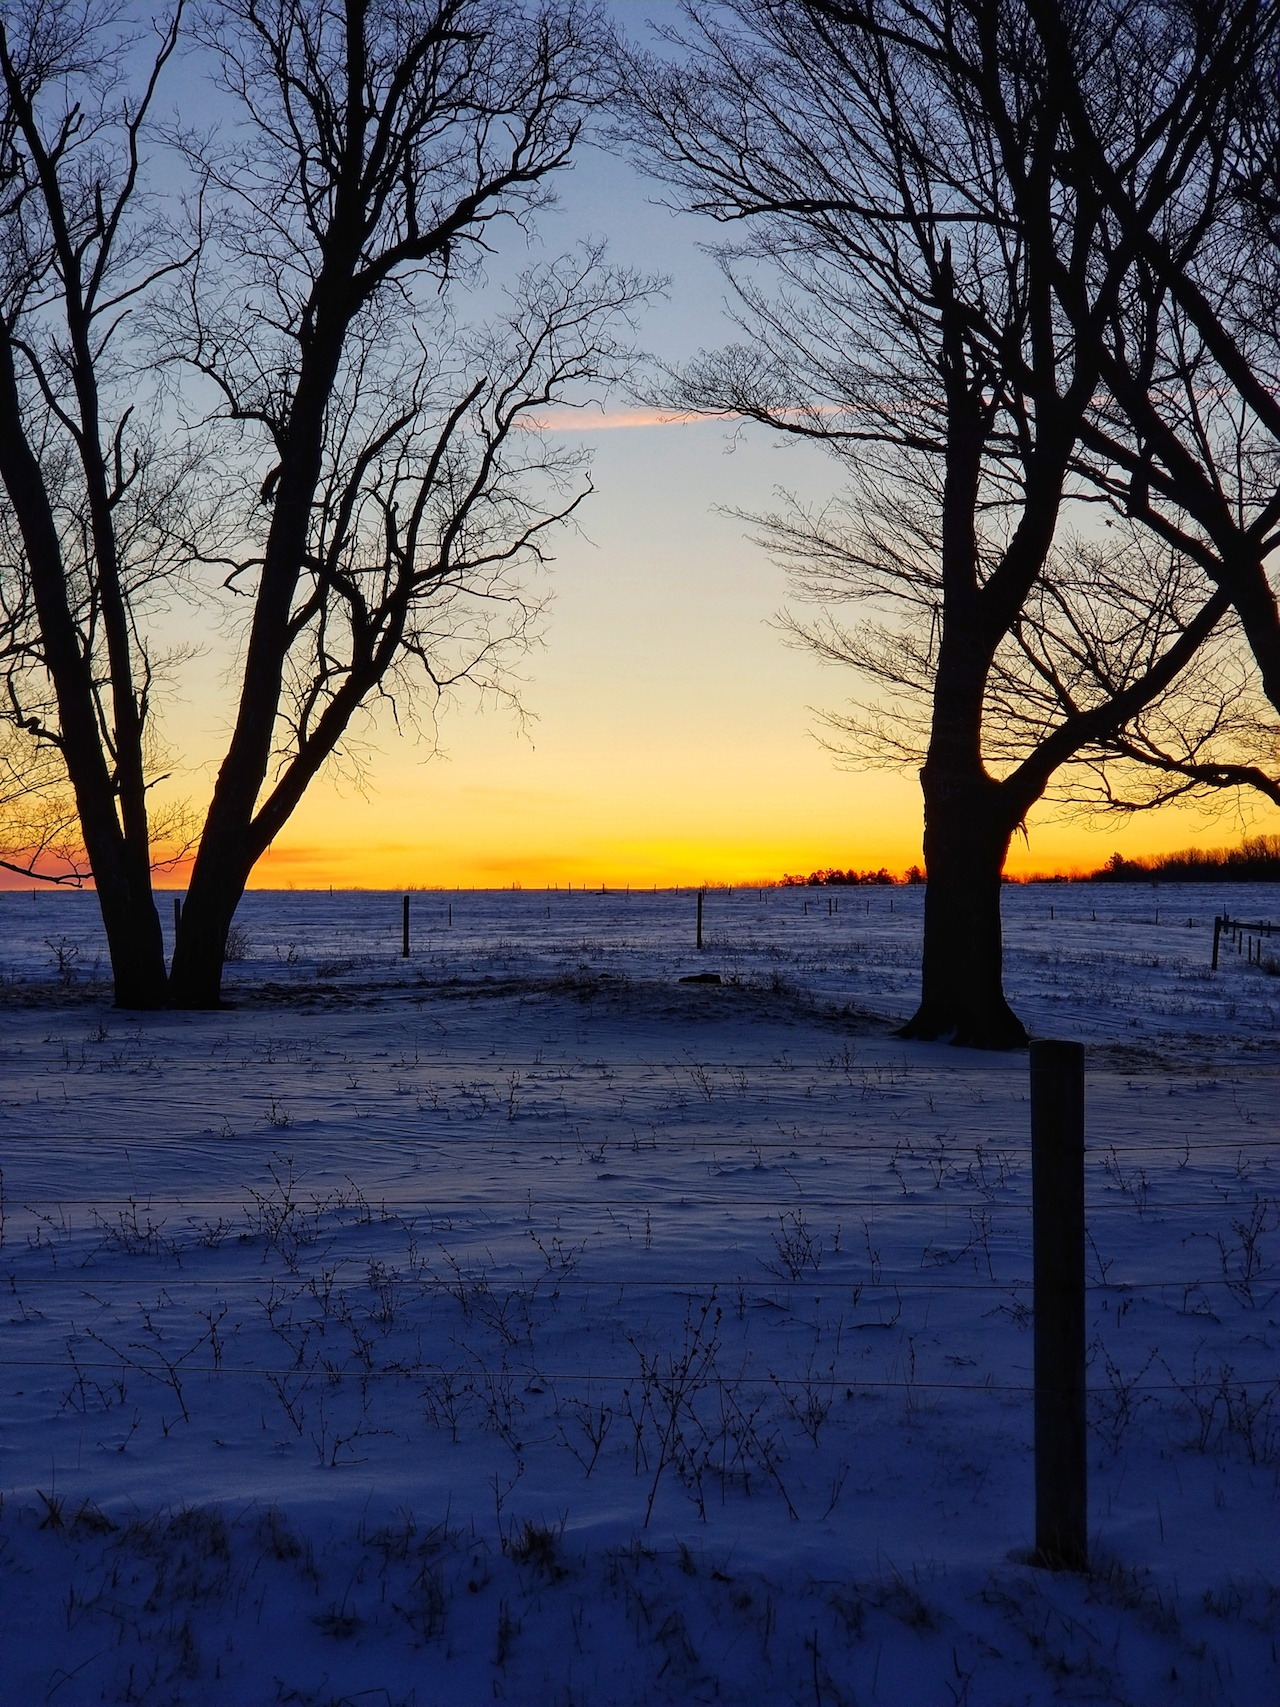 Sunset field in Yates County (photo)